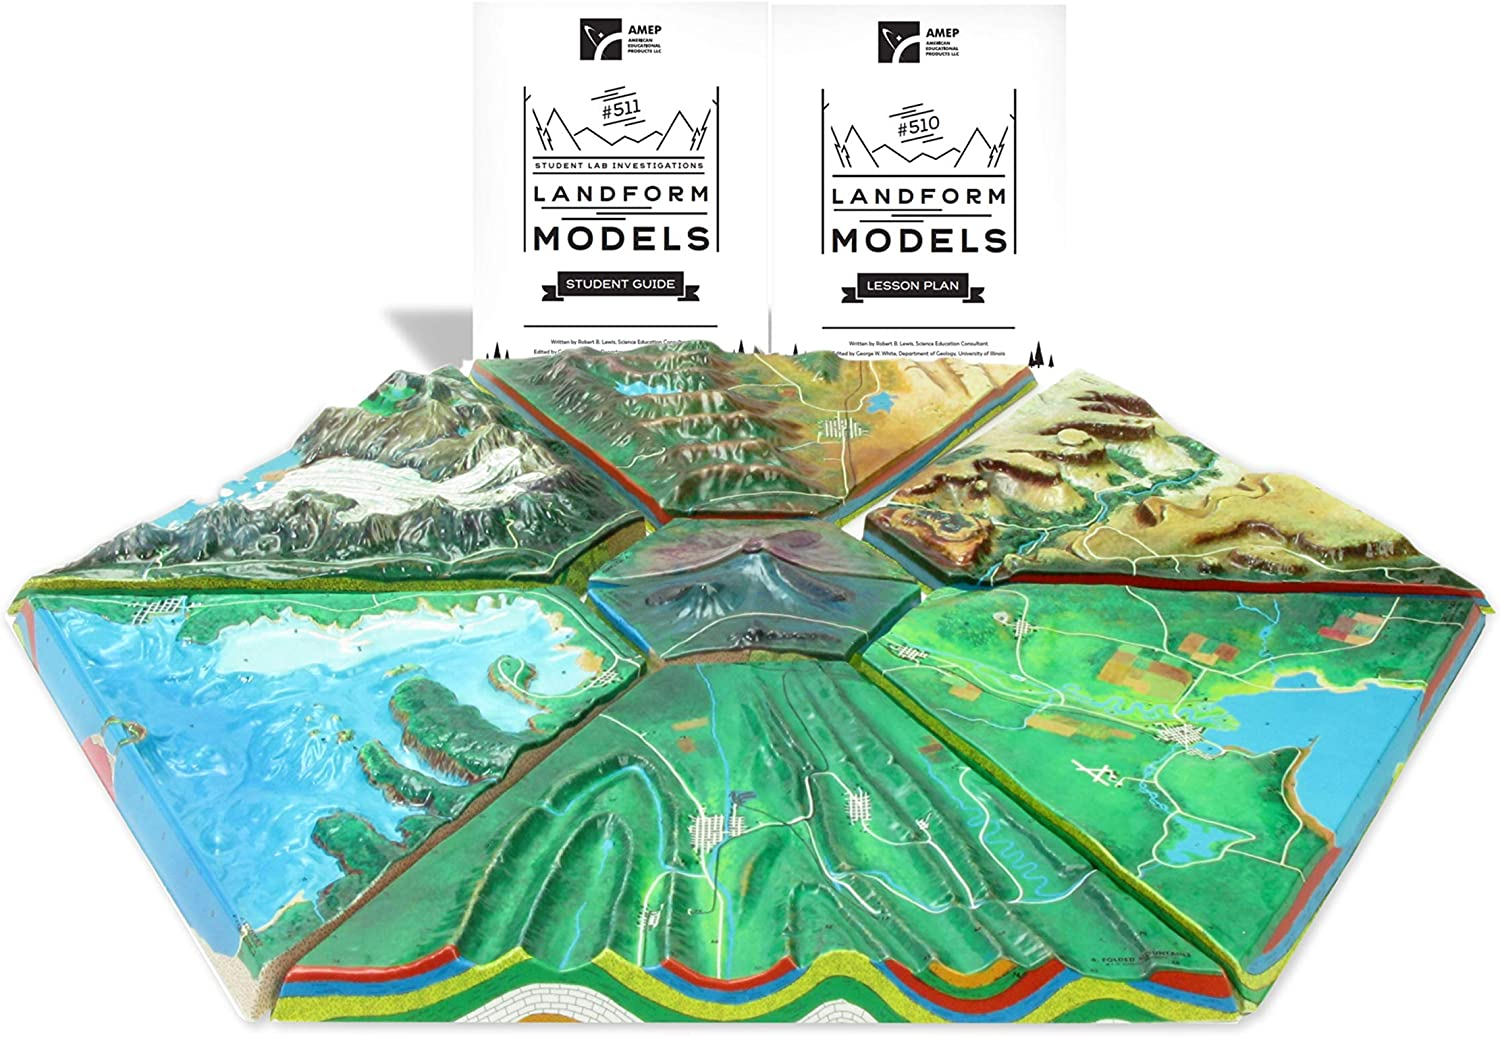 American Educational Landform Discovery Pack Models without CDs or Tapes